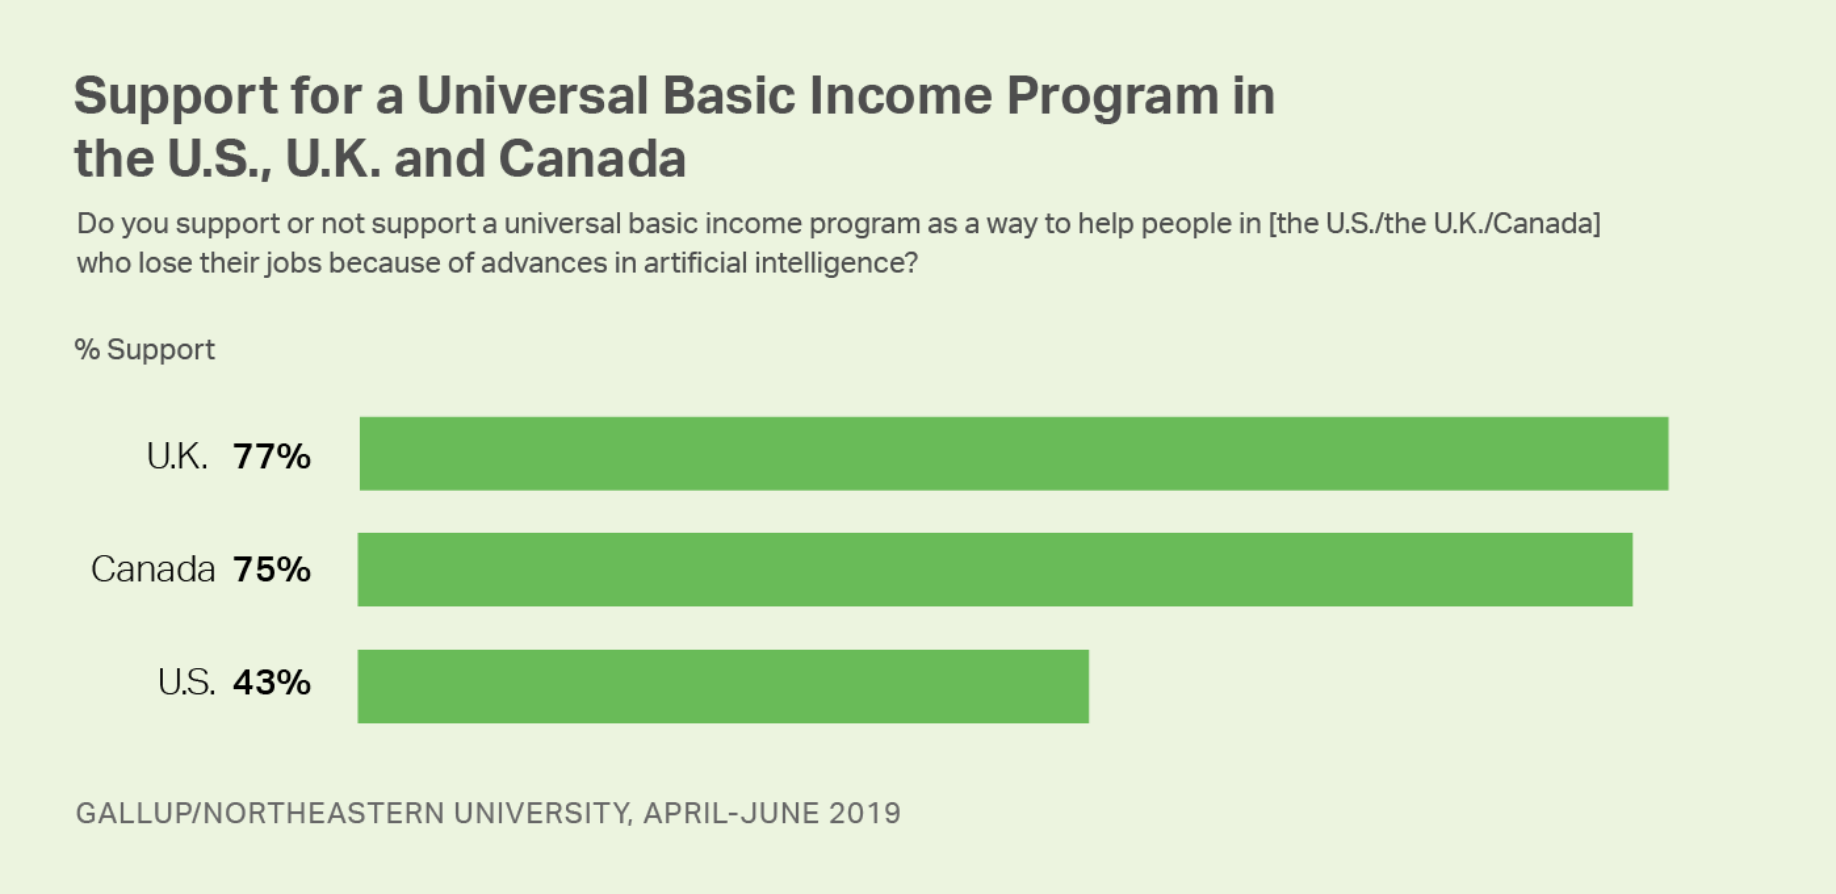 Support for Universal Basic Income in the US, UK and Canada